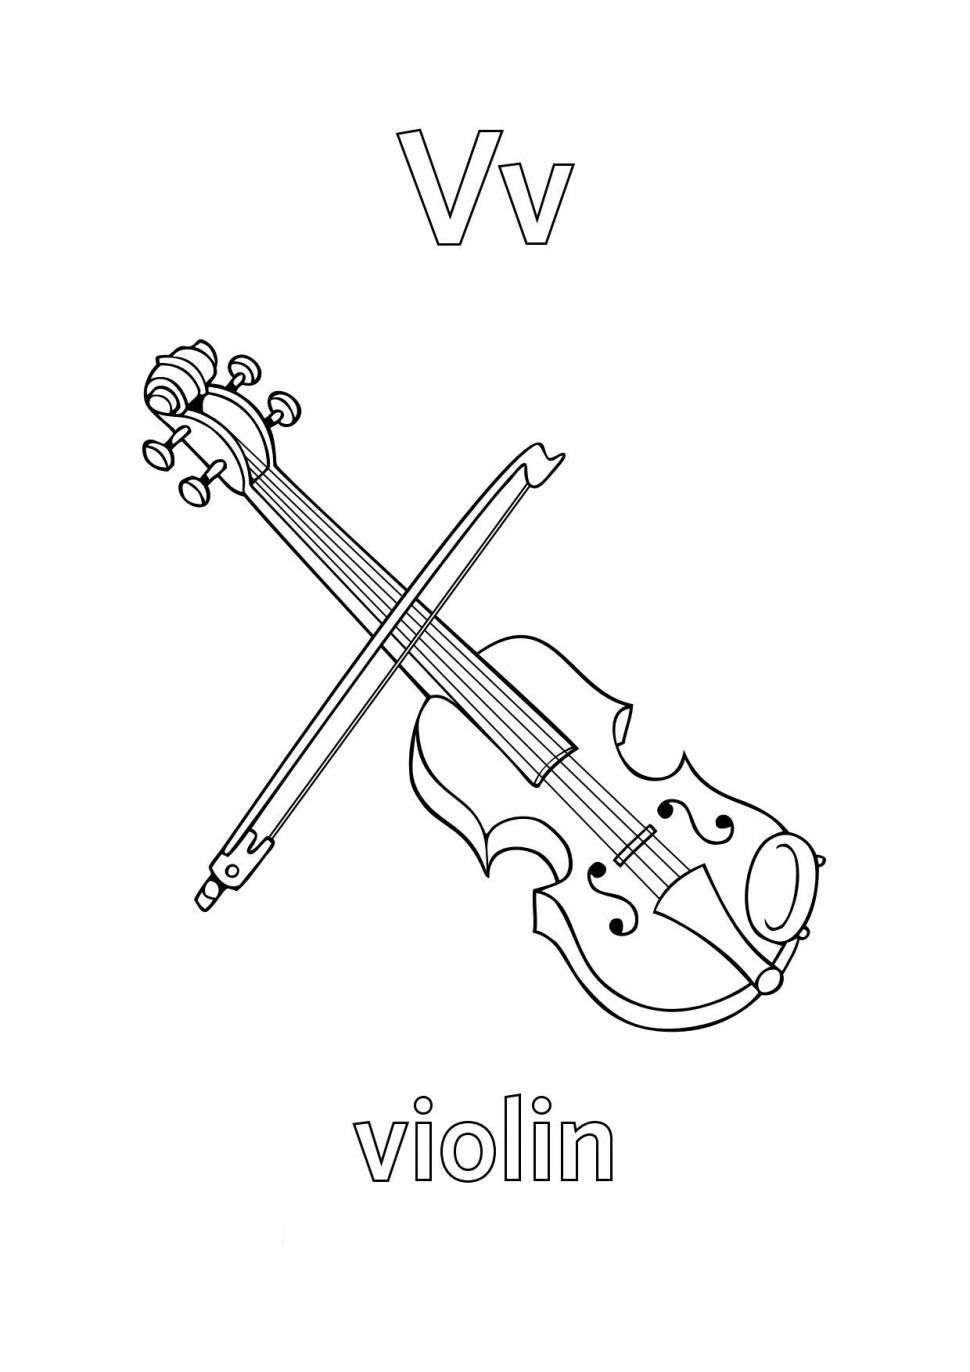 Violin Coloring Pages Best Coloring Pages For Kids Alphabet Coloring Alphabet Coloring Pages Letter A Coloring Pages